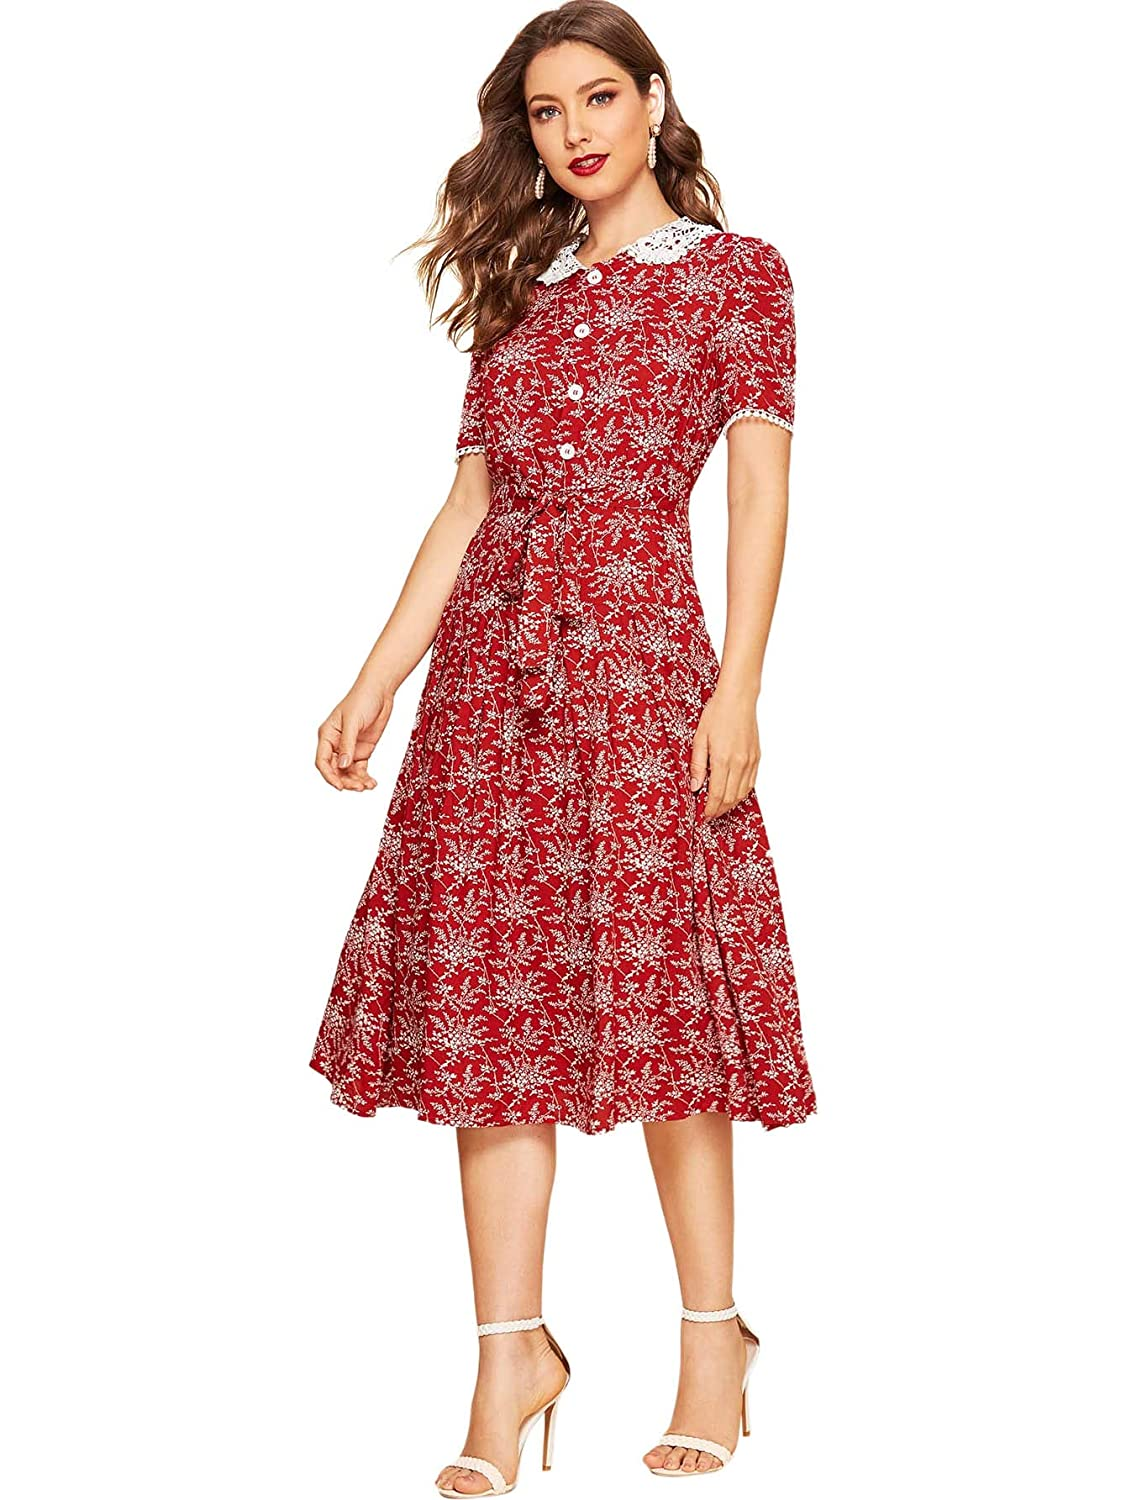 500 Vintage Style Dresses for Sale | Vintage Inspired Dresses Verdusa Womens 30s Guipure Lace Collar Belted Leaf Print Vintage Midi Dress $28.99 AT vintagedancer.com